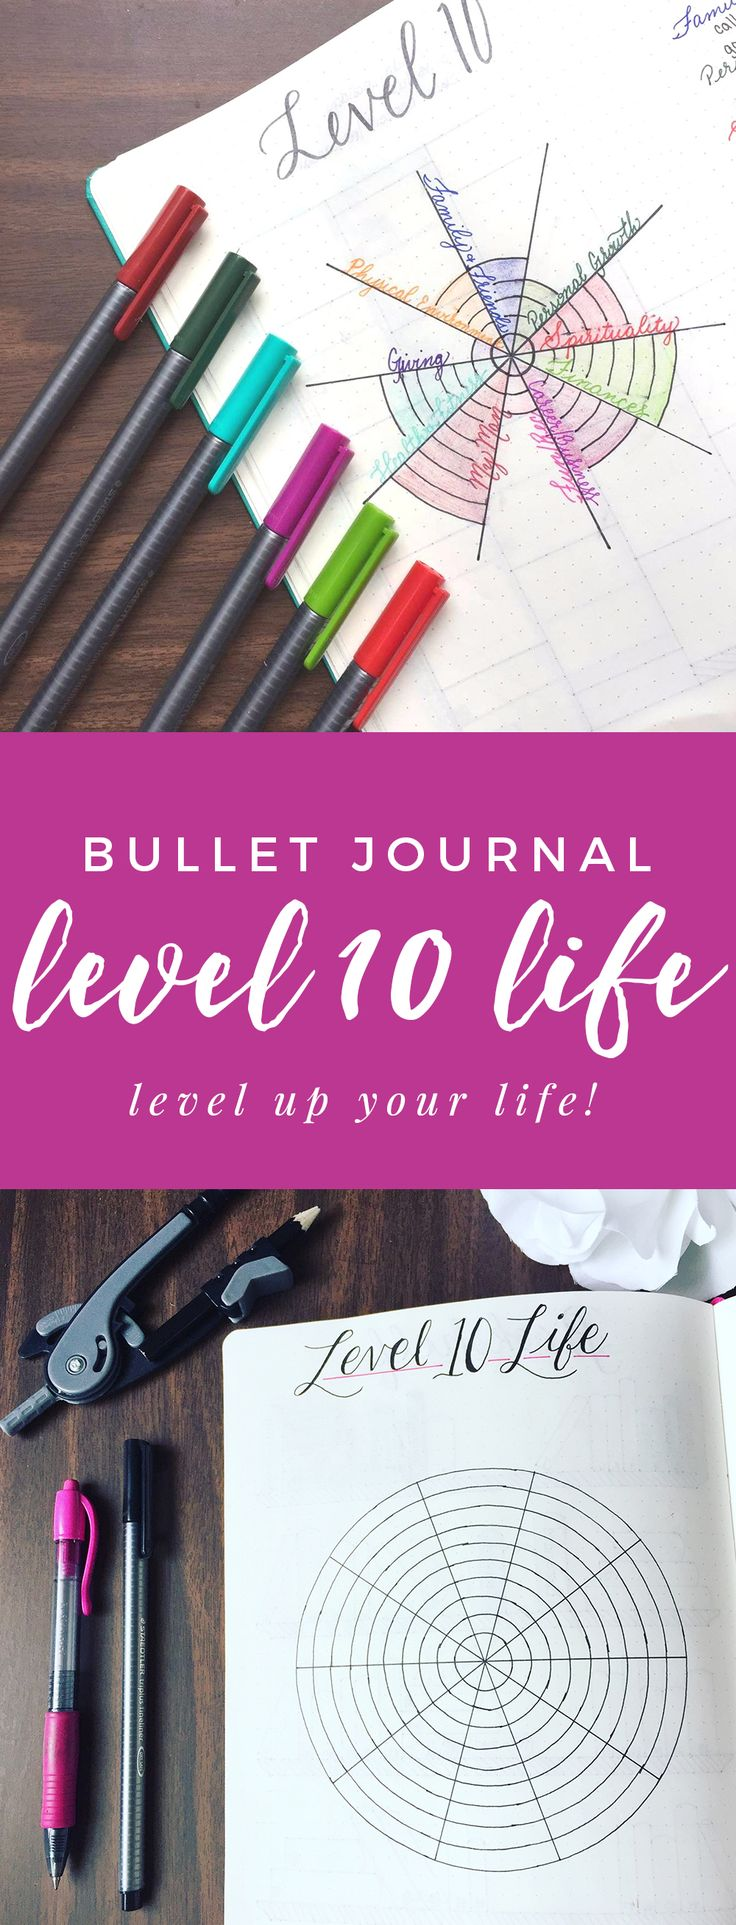 Create a Bullet Journal Level 10 Life Spread http://productiveandpretty.com/bullet-journal-level-10-life/?utm_campaign=coschedule&utm_source=pinterest&utm_medium=Jen%20%2B%20Liz%20%7C%20Productive%20and%20Pretty&utm_content=Create%20a%20Bullet%20Journal%20Level%2010%20Life%20Spread